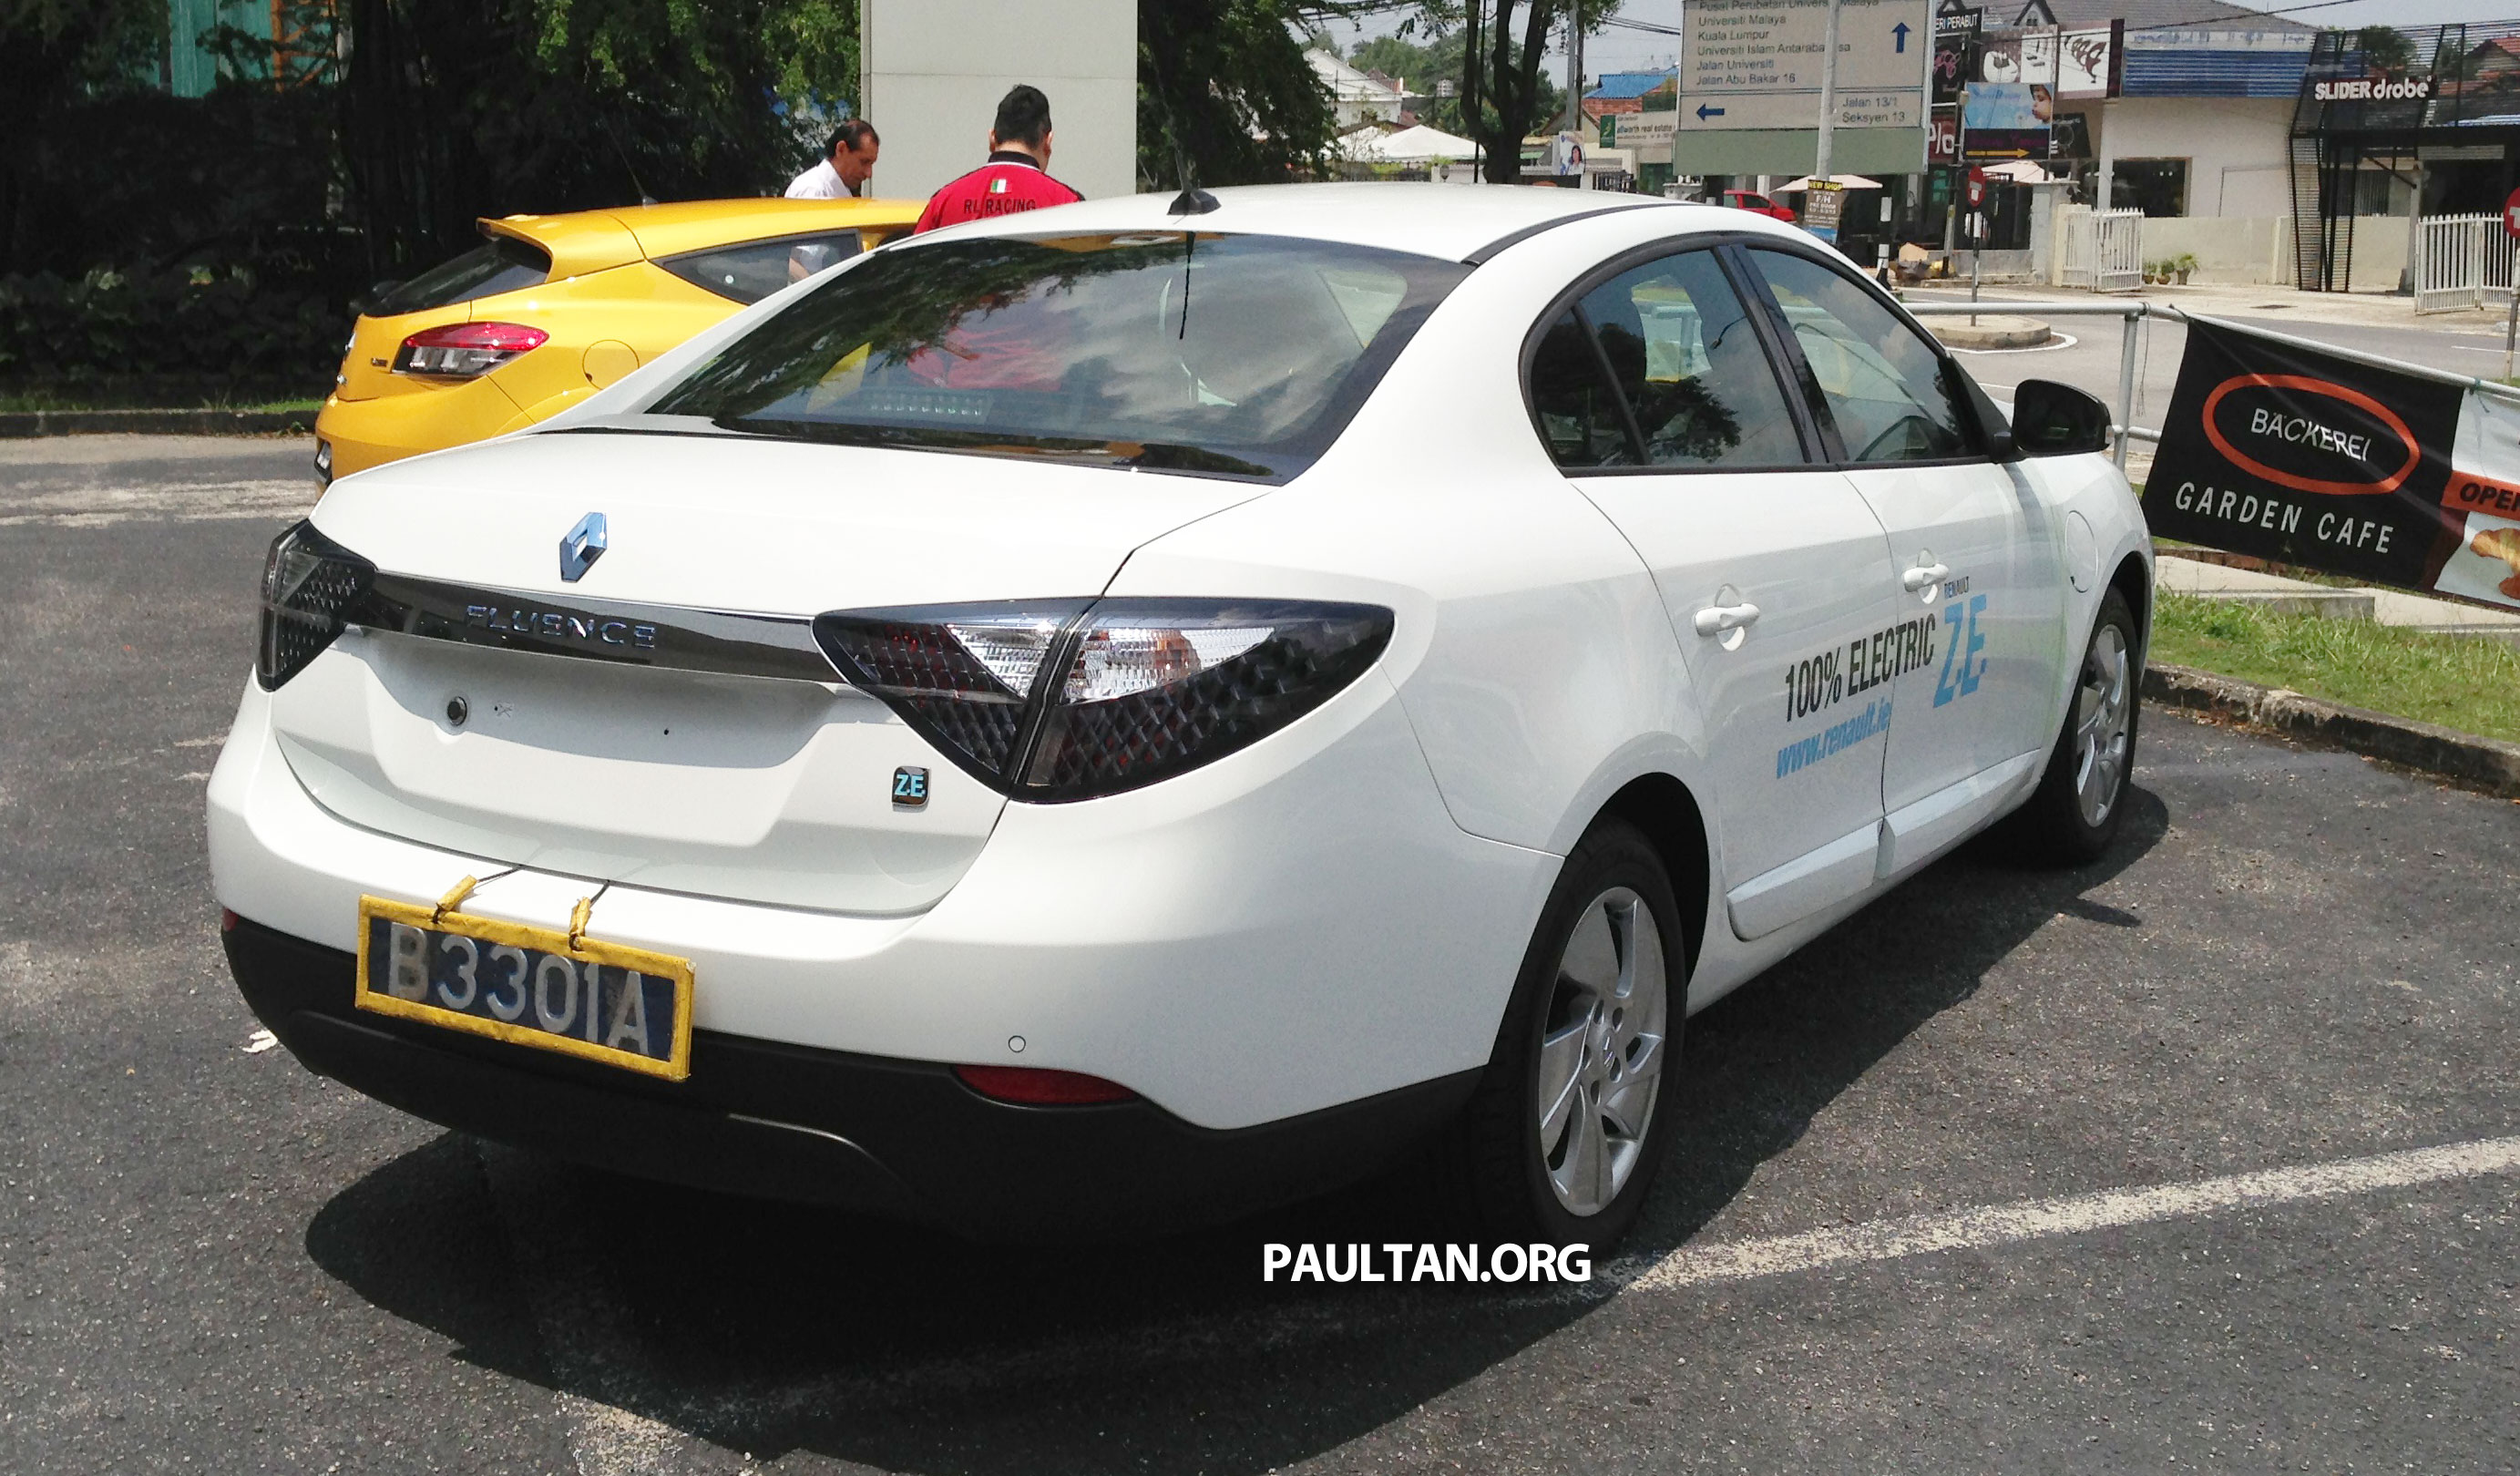 renault fluence z e with tradeplates spotted in pj paul tan image 163720. Black Bedroom Furniture Sets. Home Design Ideas